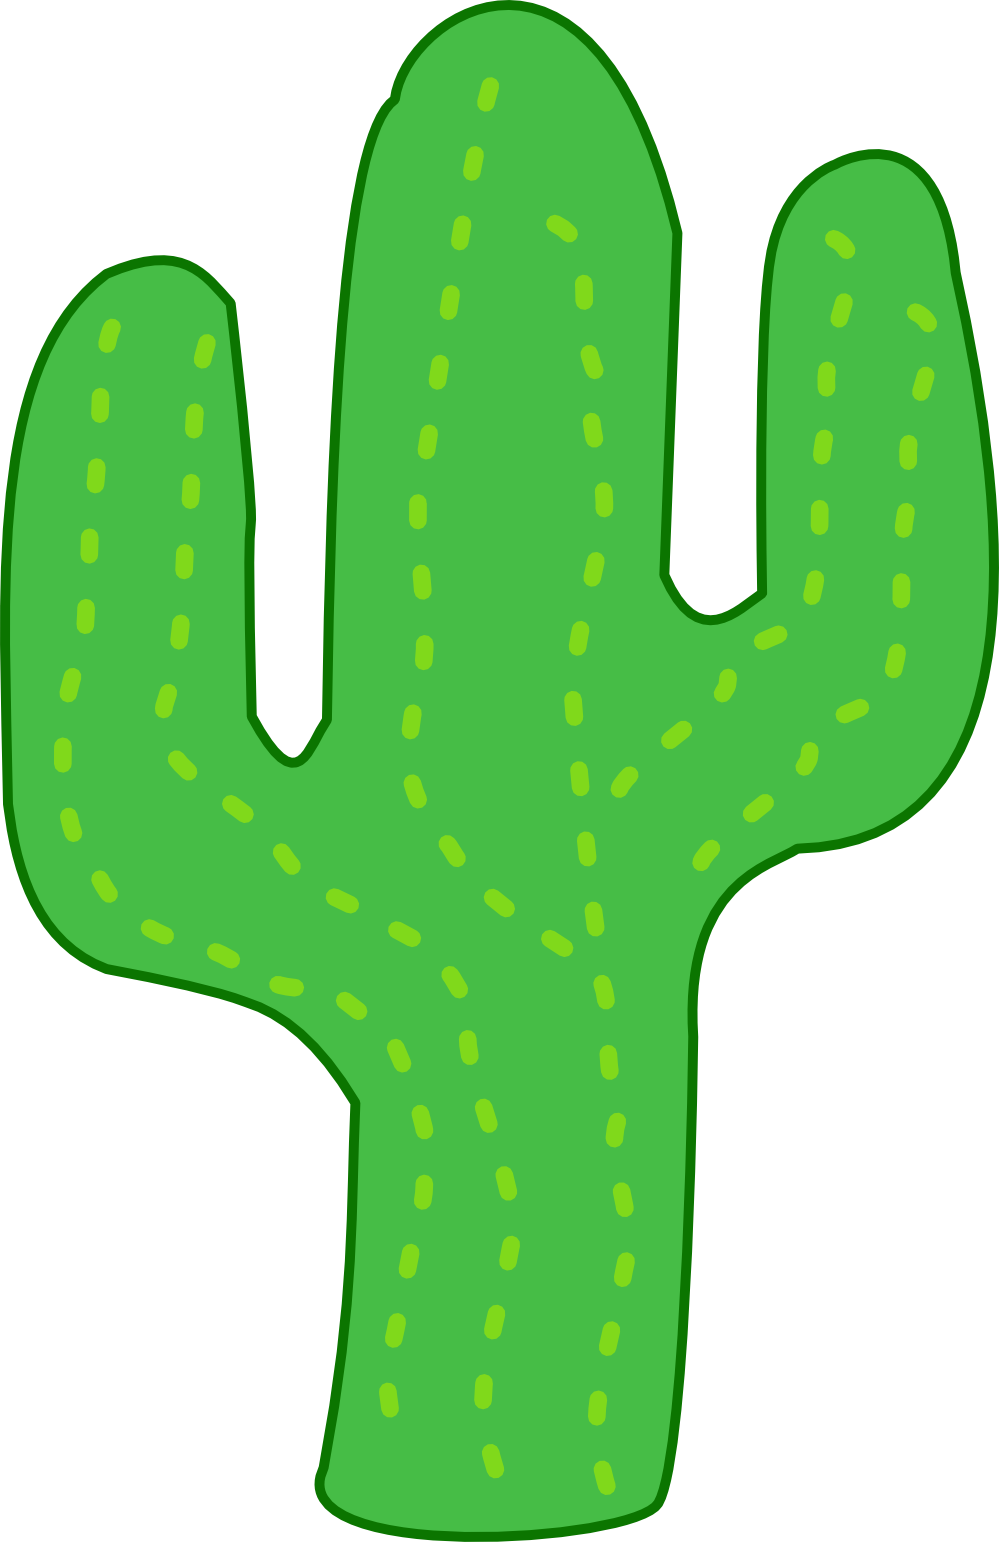 Clip Art Cactus Clip Art cactus clipart panda free images